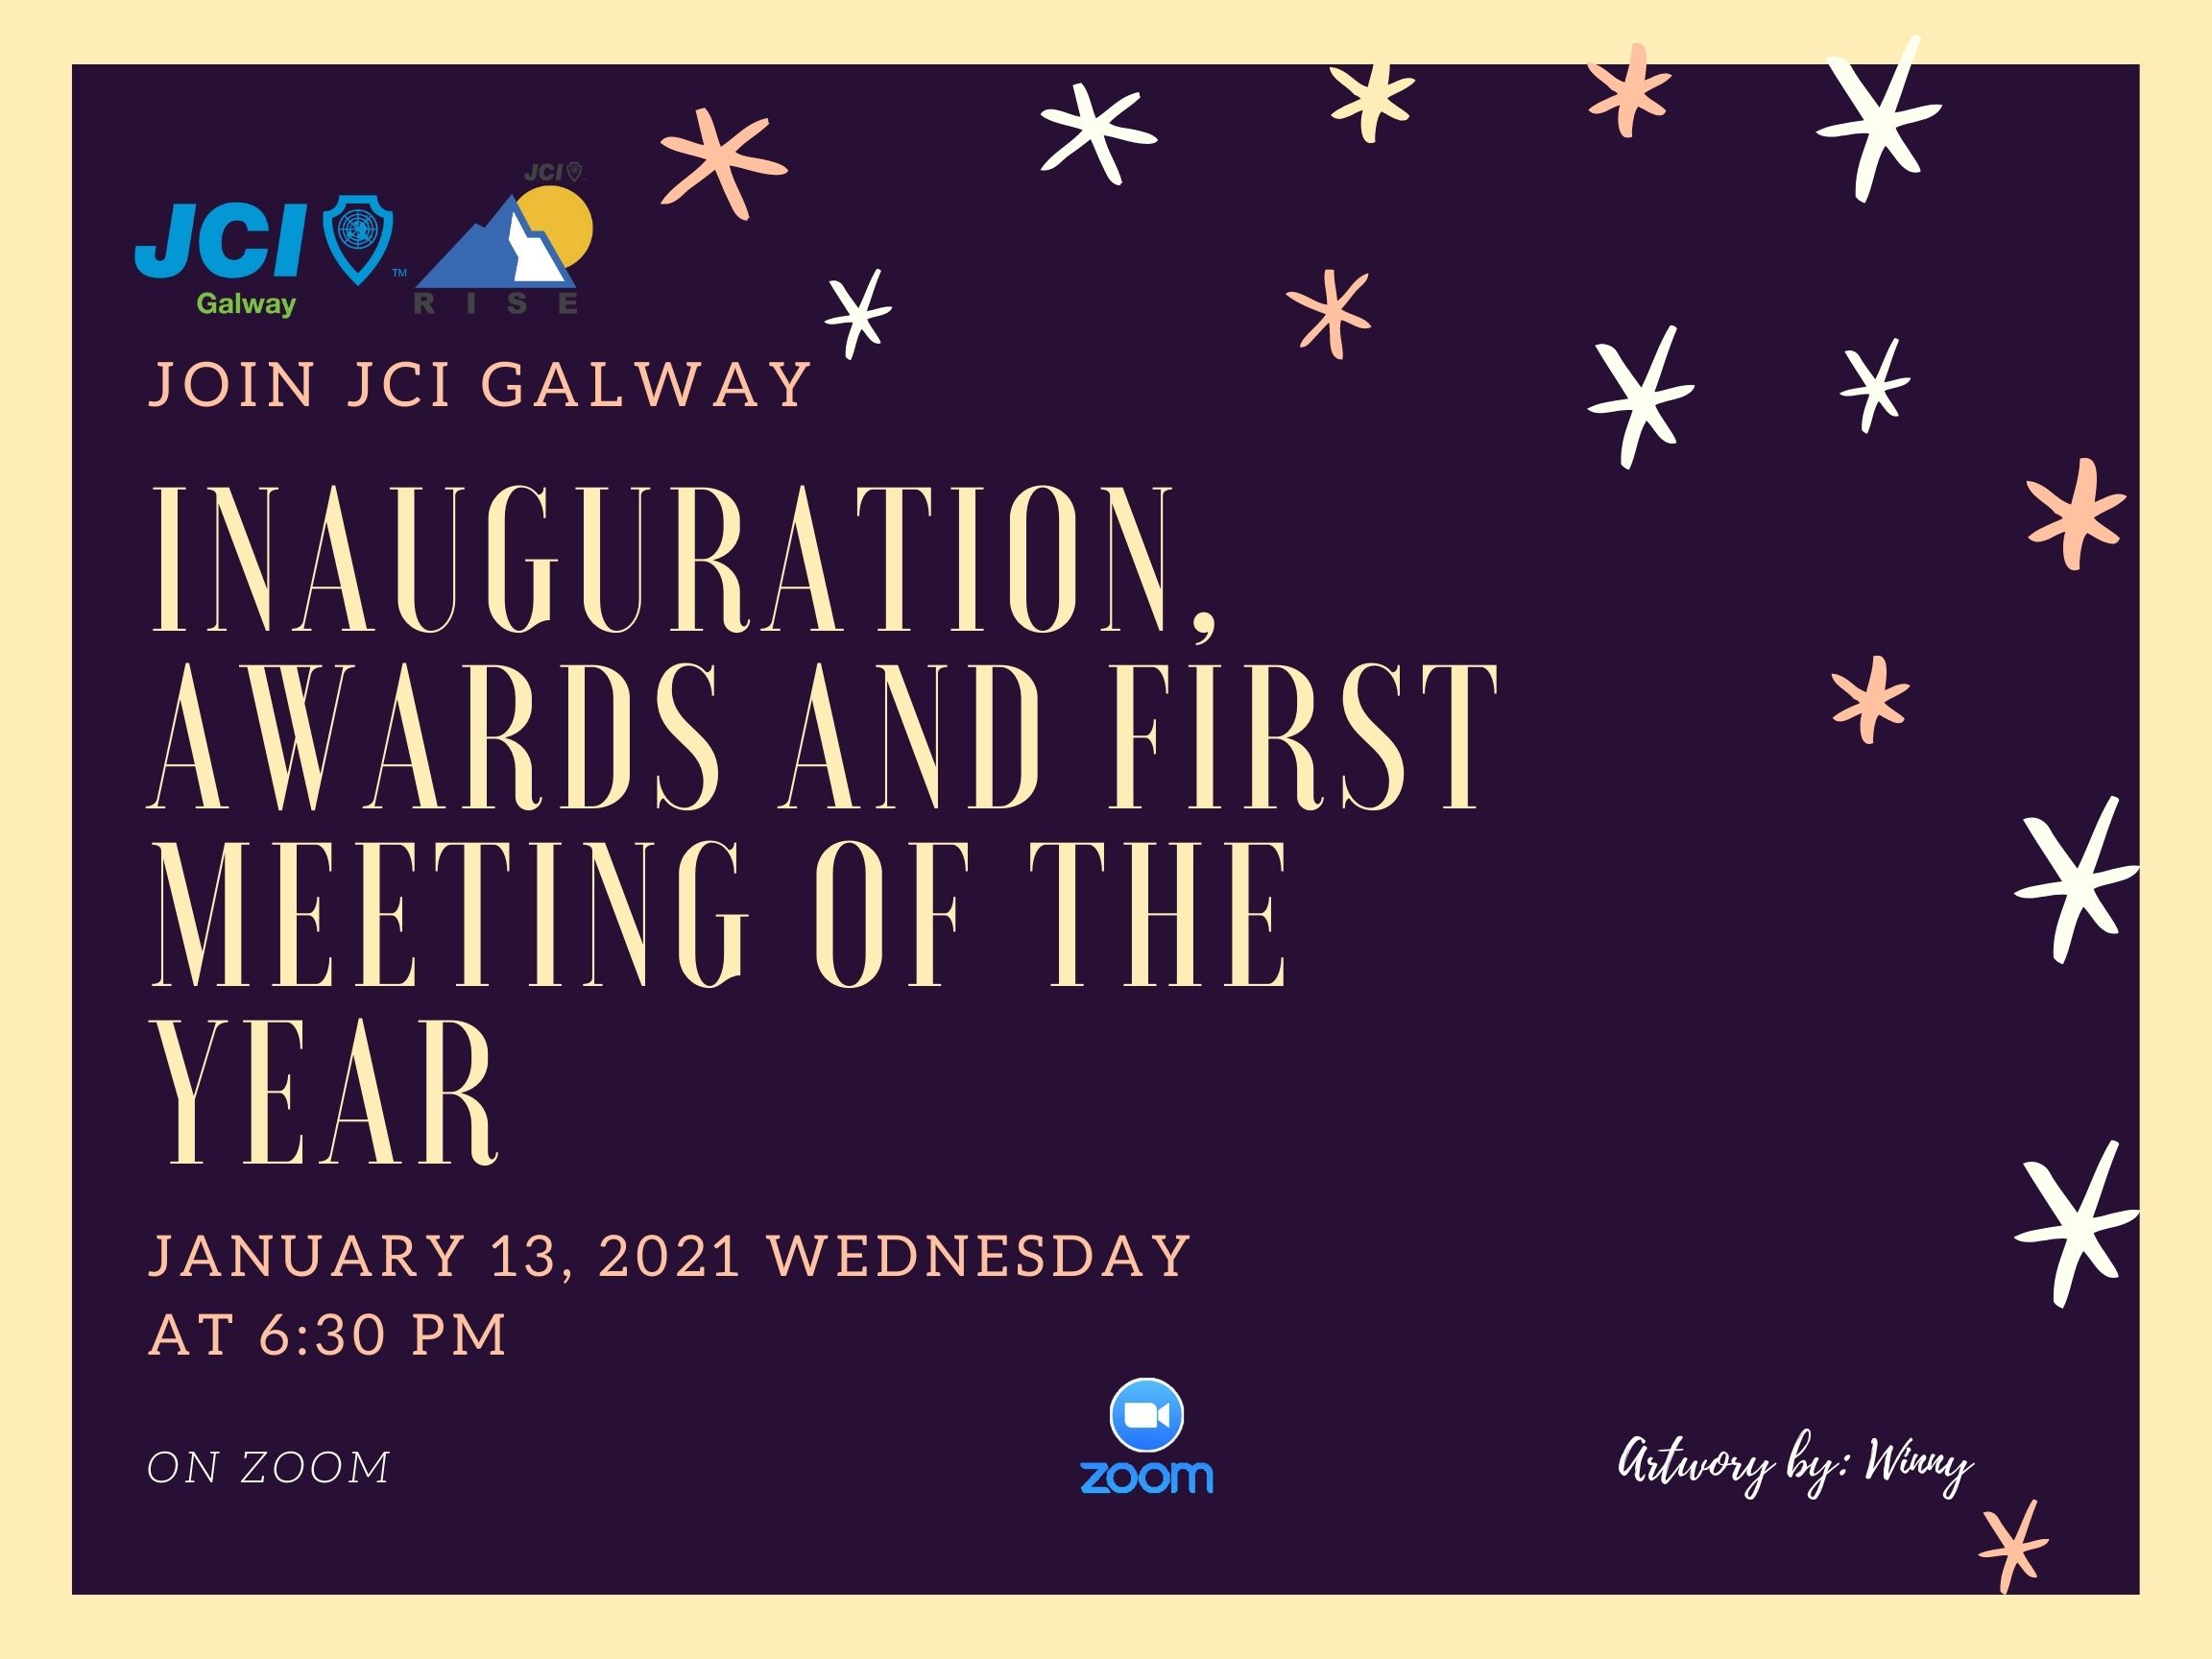 JCI Galway Inauguration, Awards and first meeting of the year